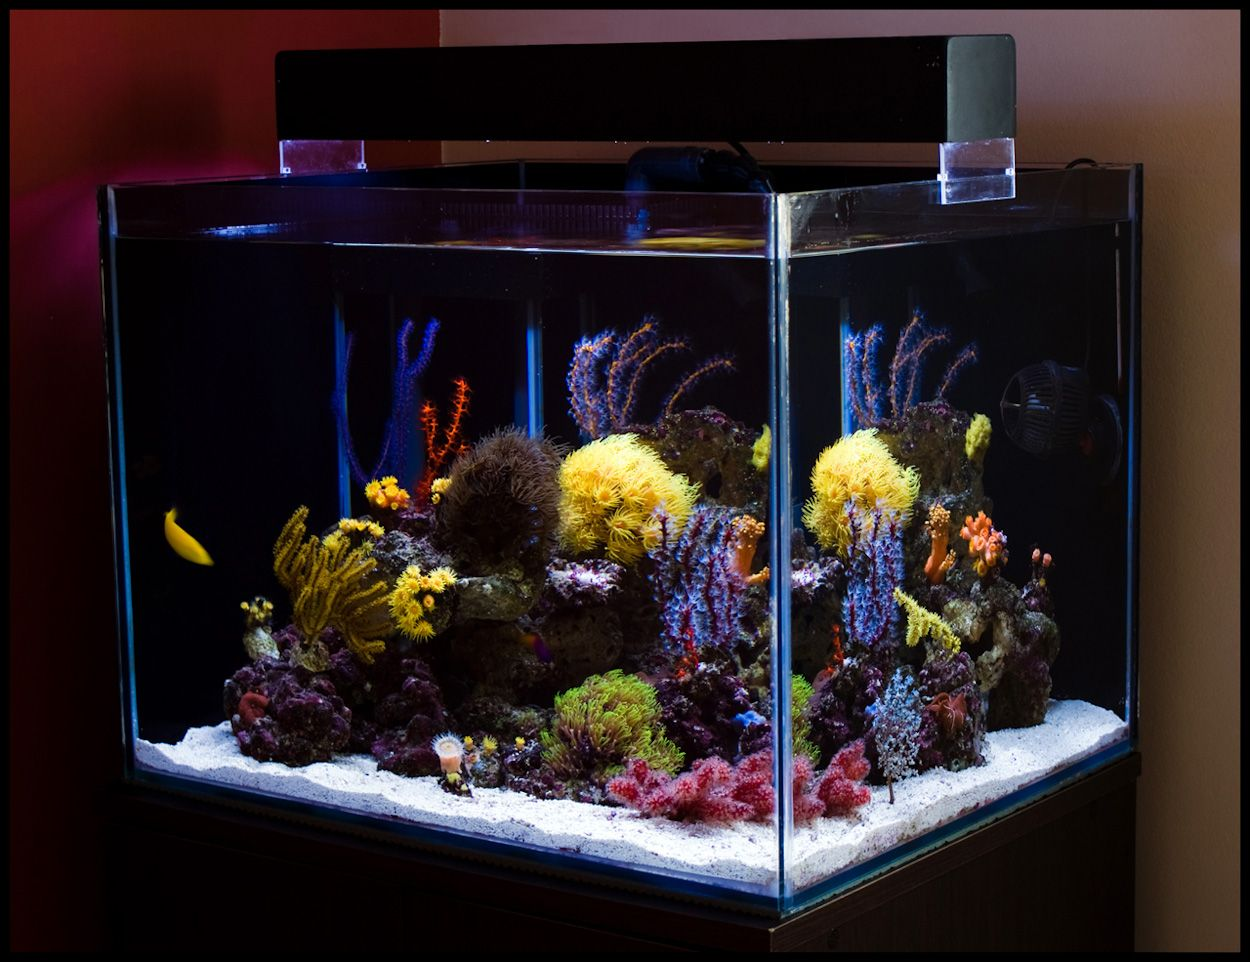 Fish aquarium karachi - All You Need To Know About Aquarium This Is How Would Look Like A List Of Several Things To Note Before The Fish Become Part Of Your Household